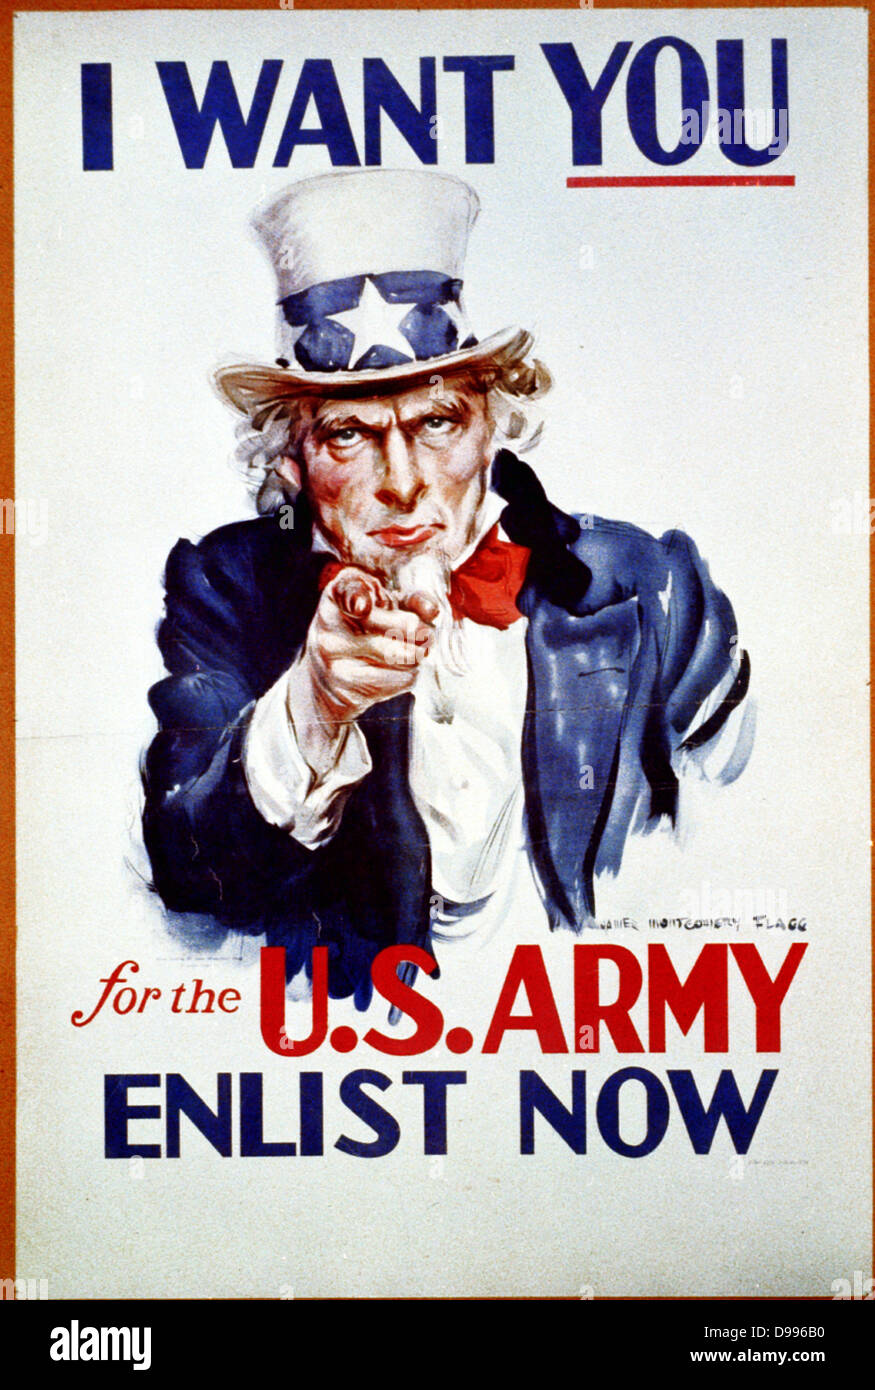 I want you for the U.S. Army 1941. (poster)'I want you' is above Uncle Sam, 'for the U.S. Army, Enlist - Stock Image